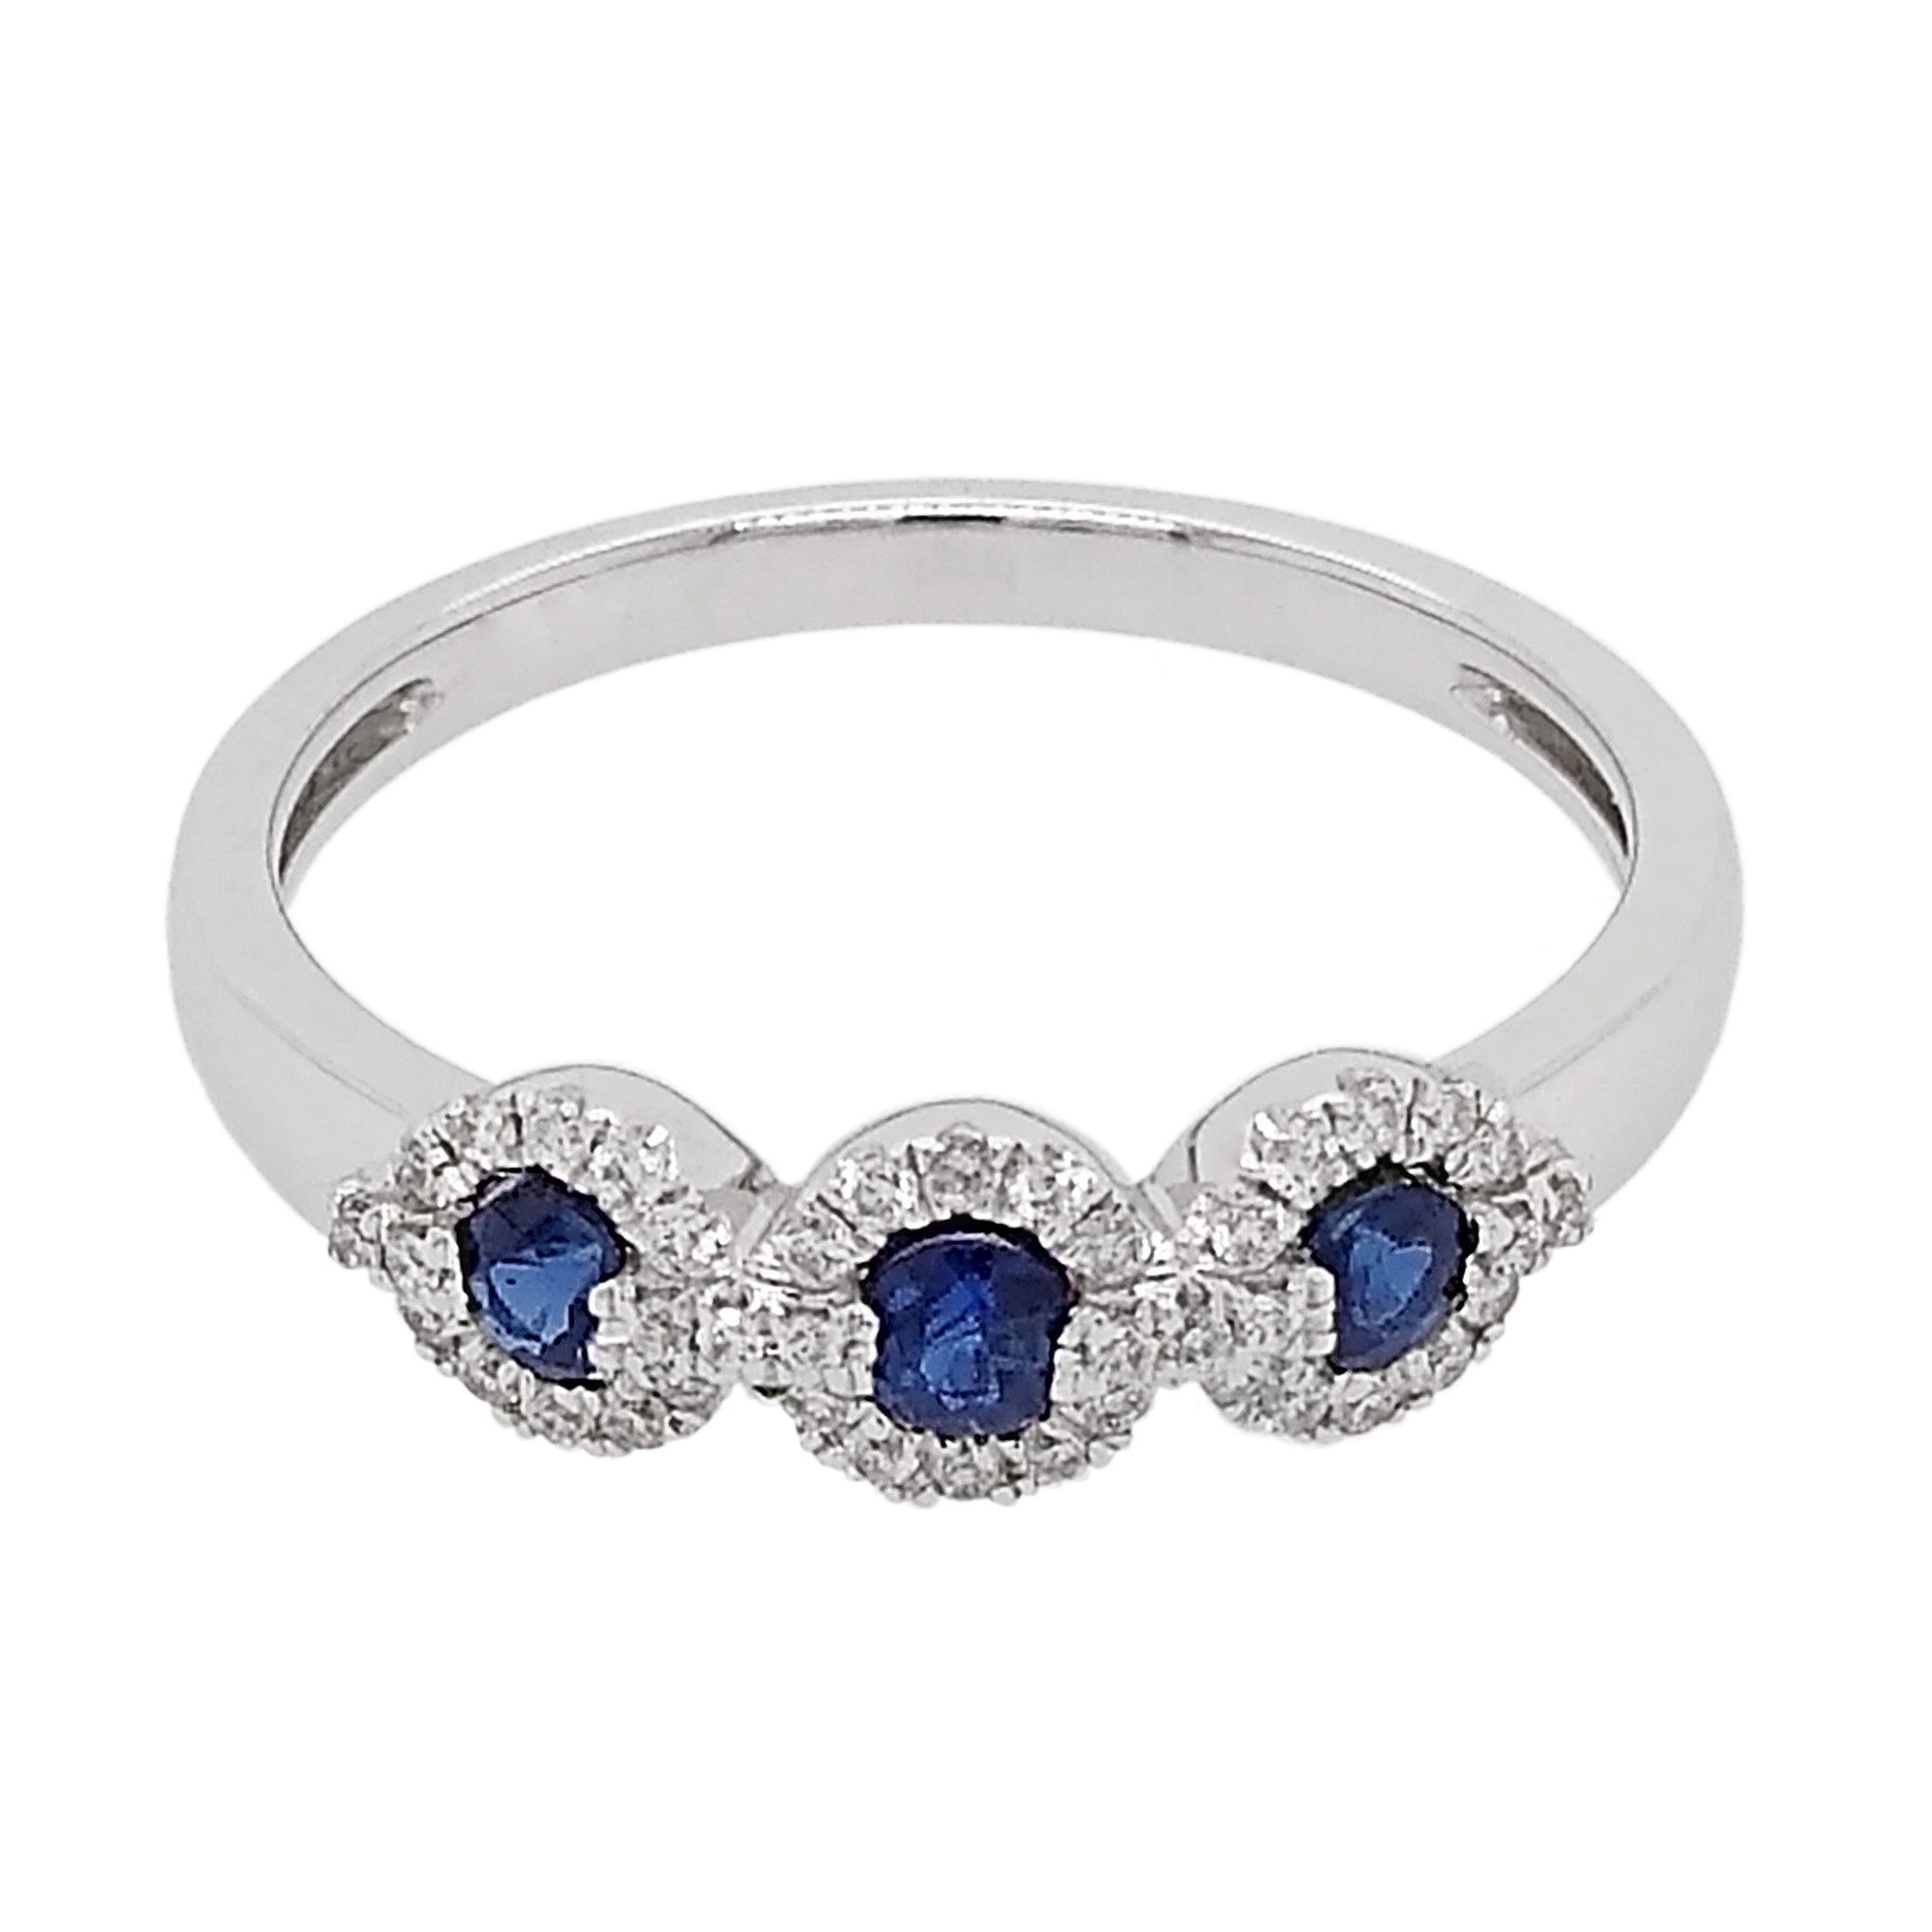 18ct White Gold Sapphire & Pave Diamond Trilogy Ring